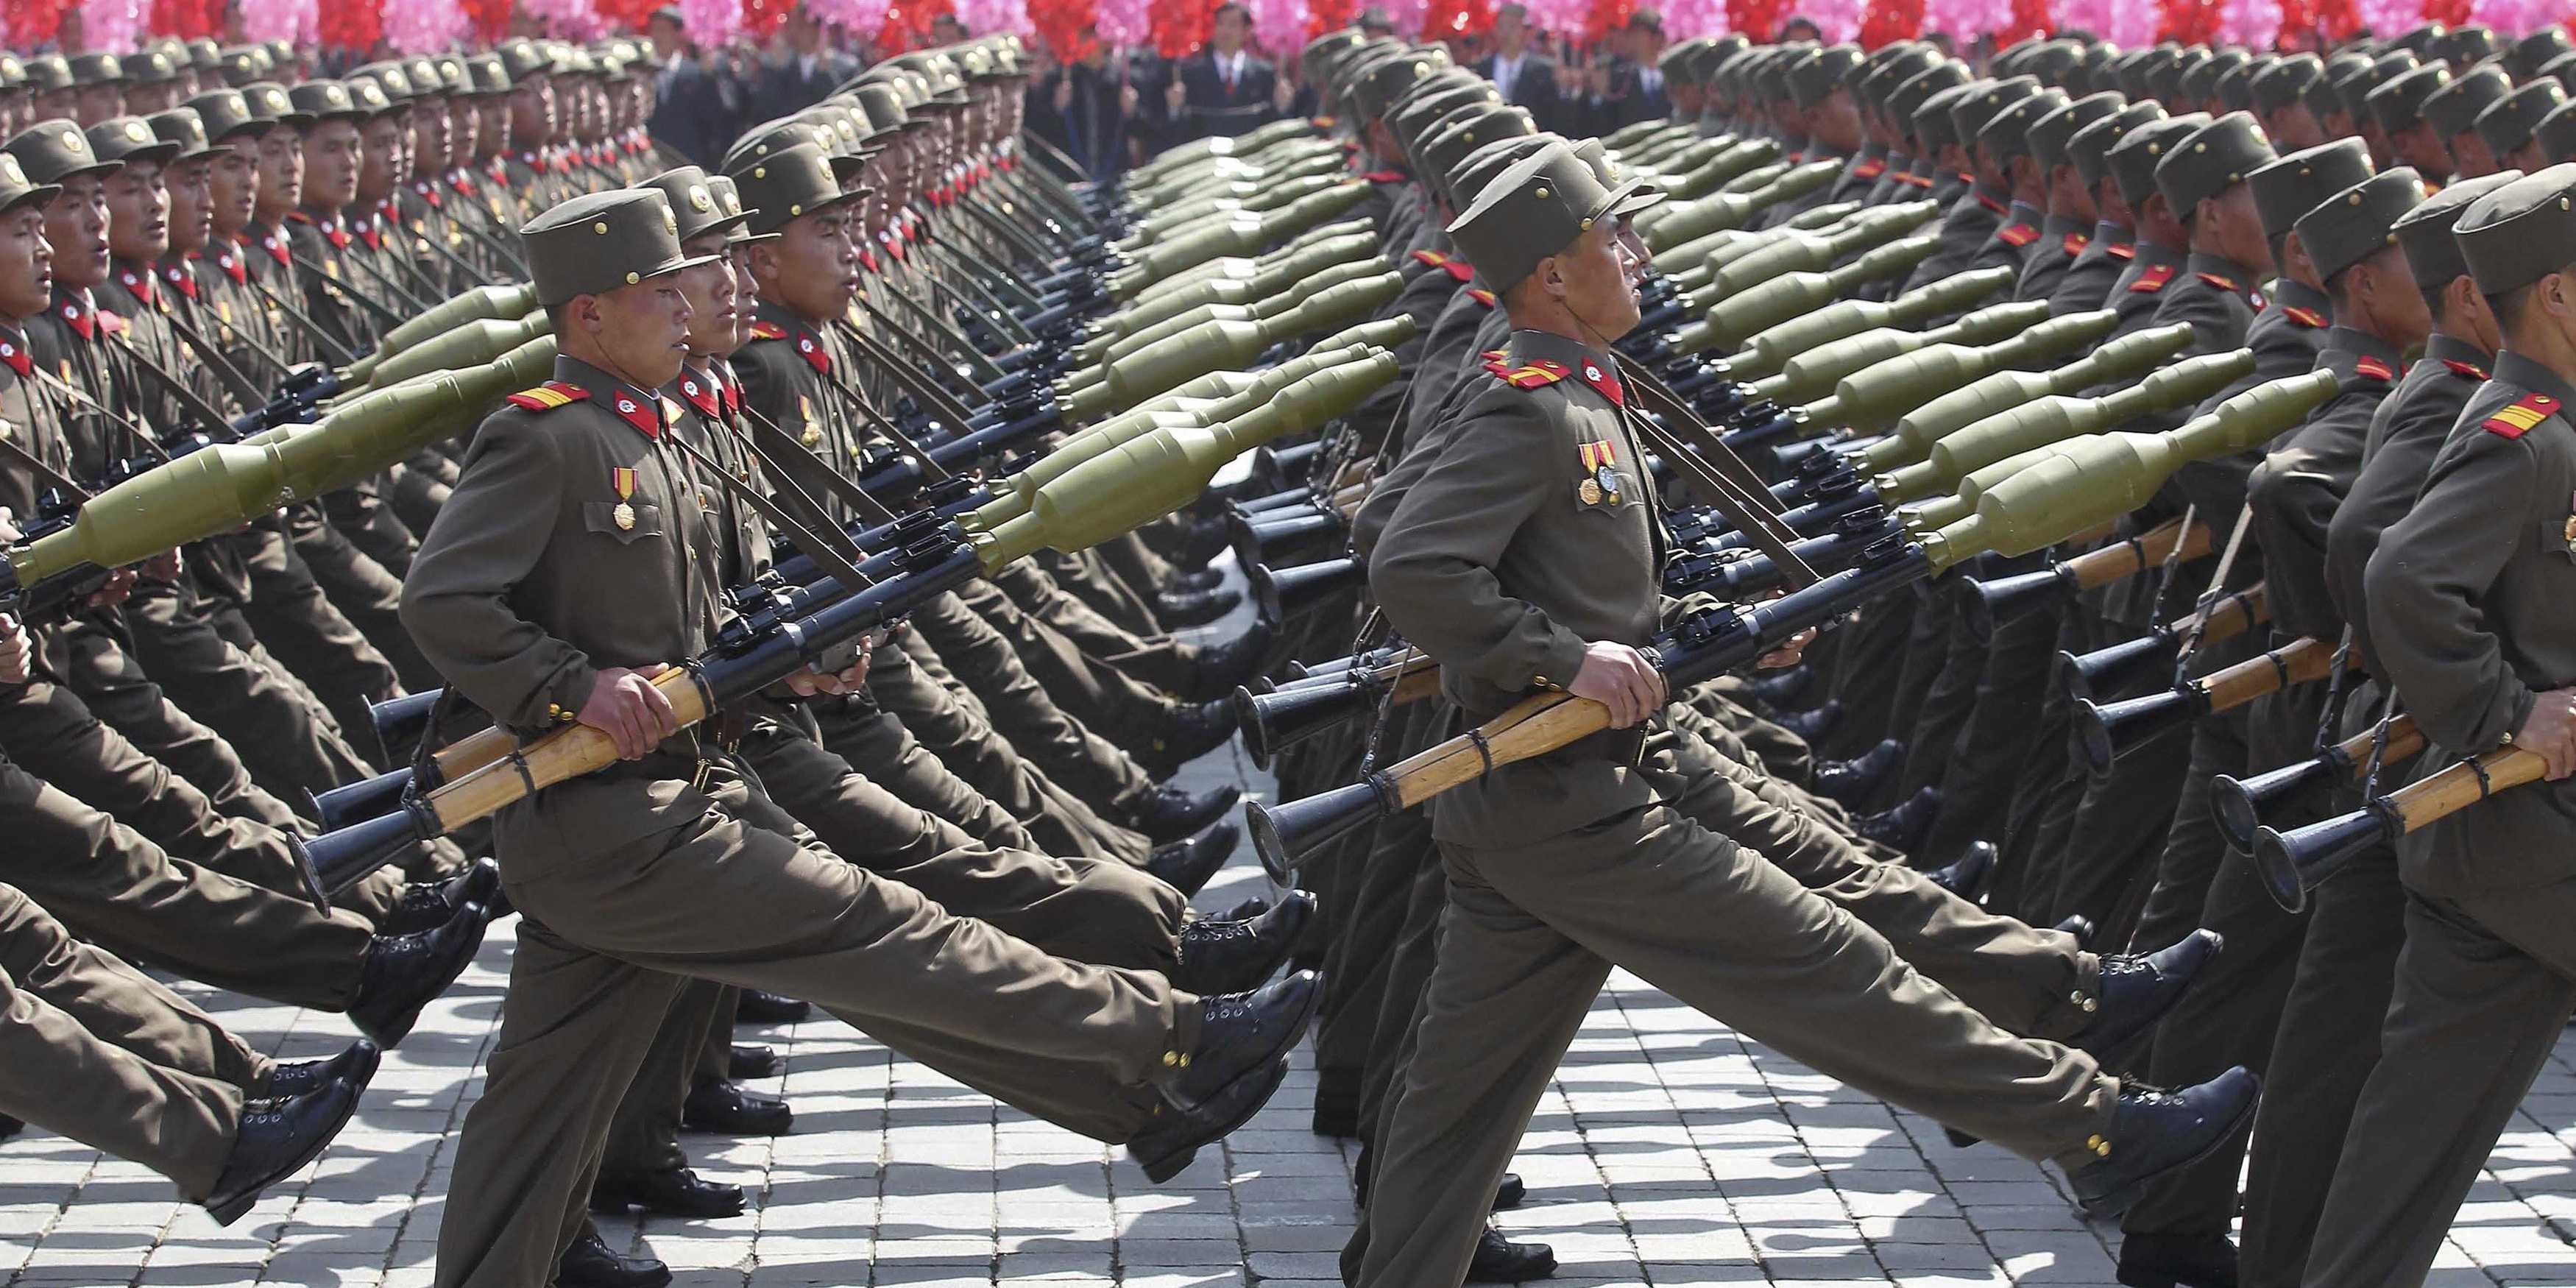 Heres A List Of The Most Powerful Militaries In The World - World's most powerful military countries 2015